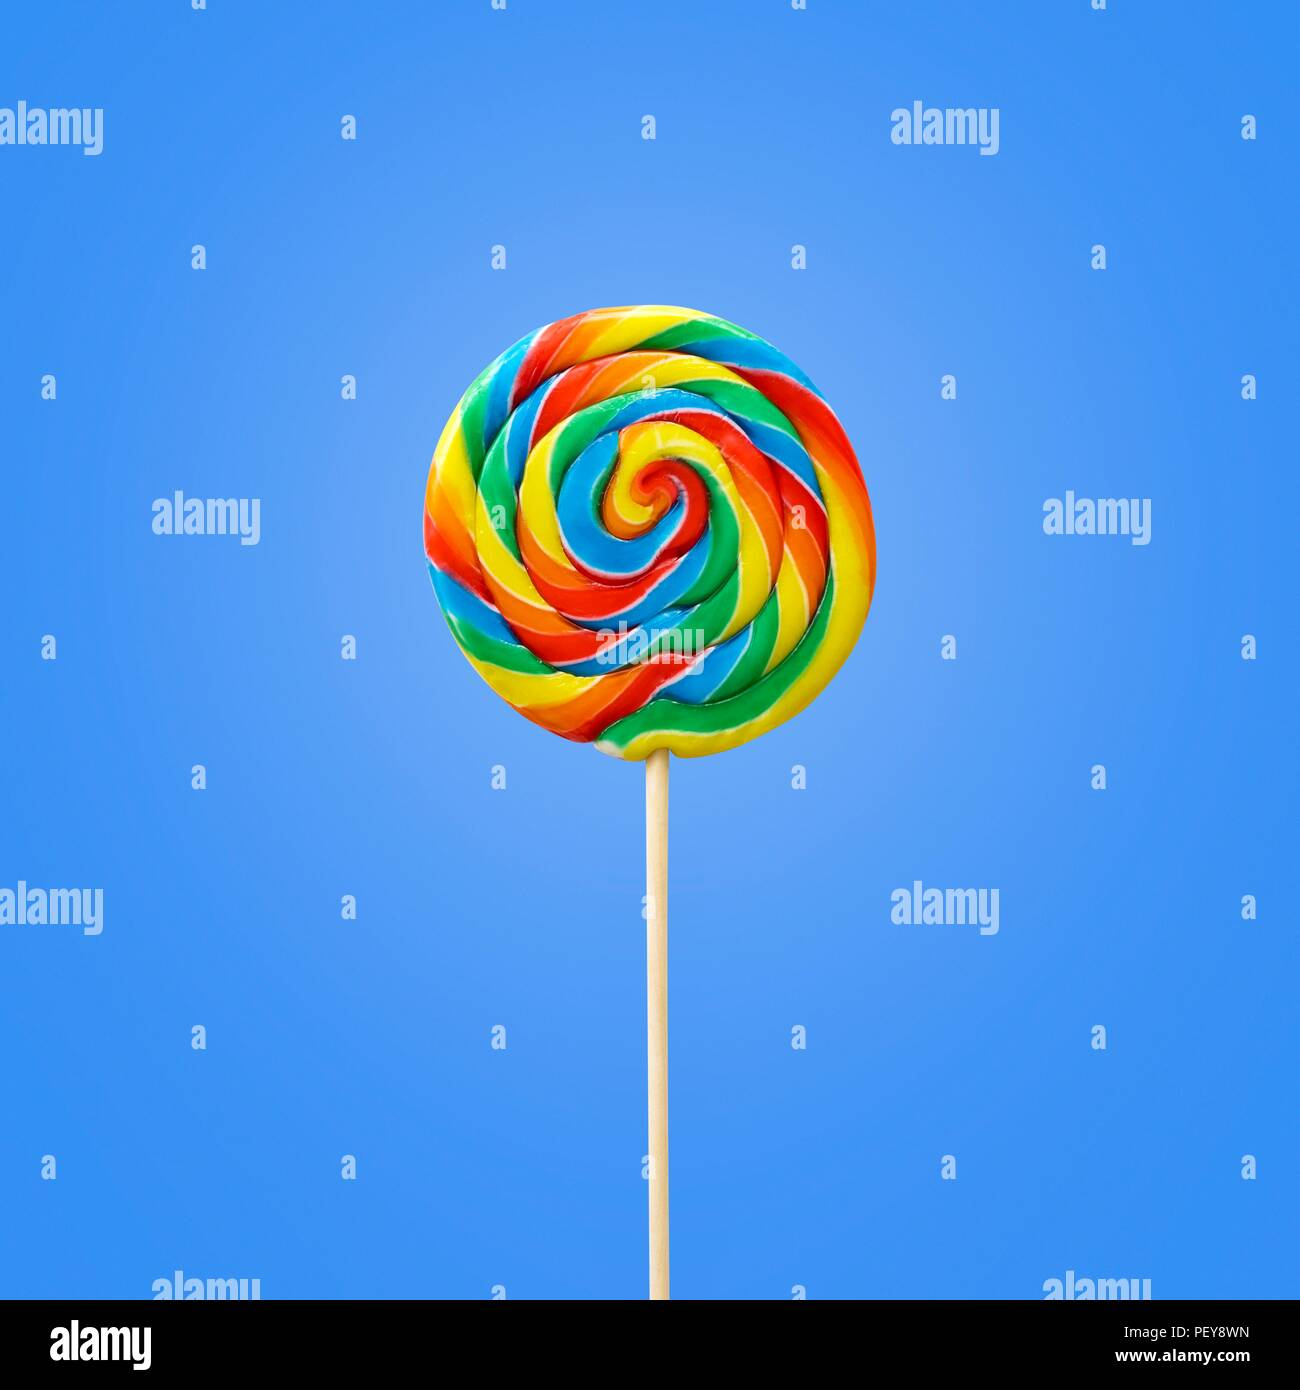 Bright coloured lollipop against a blue background. - Stock Image